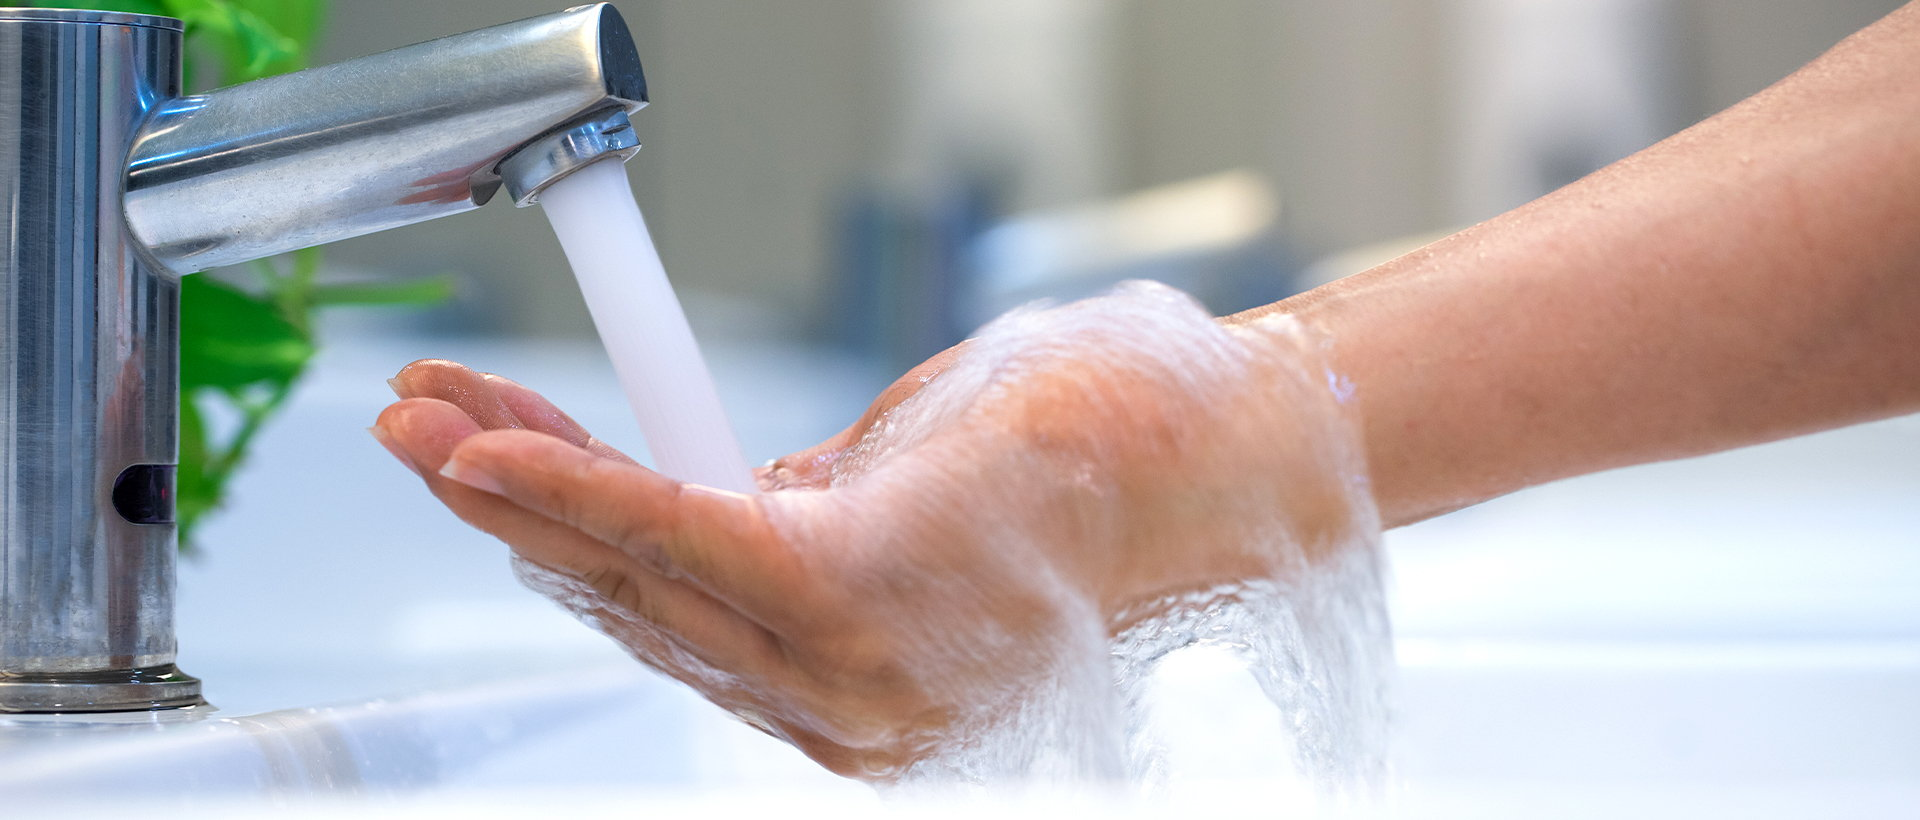 A hand under warm water running from a faucet.